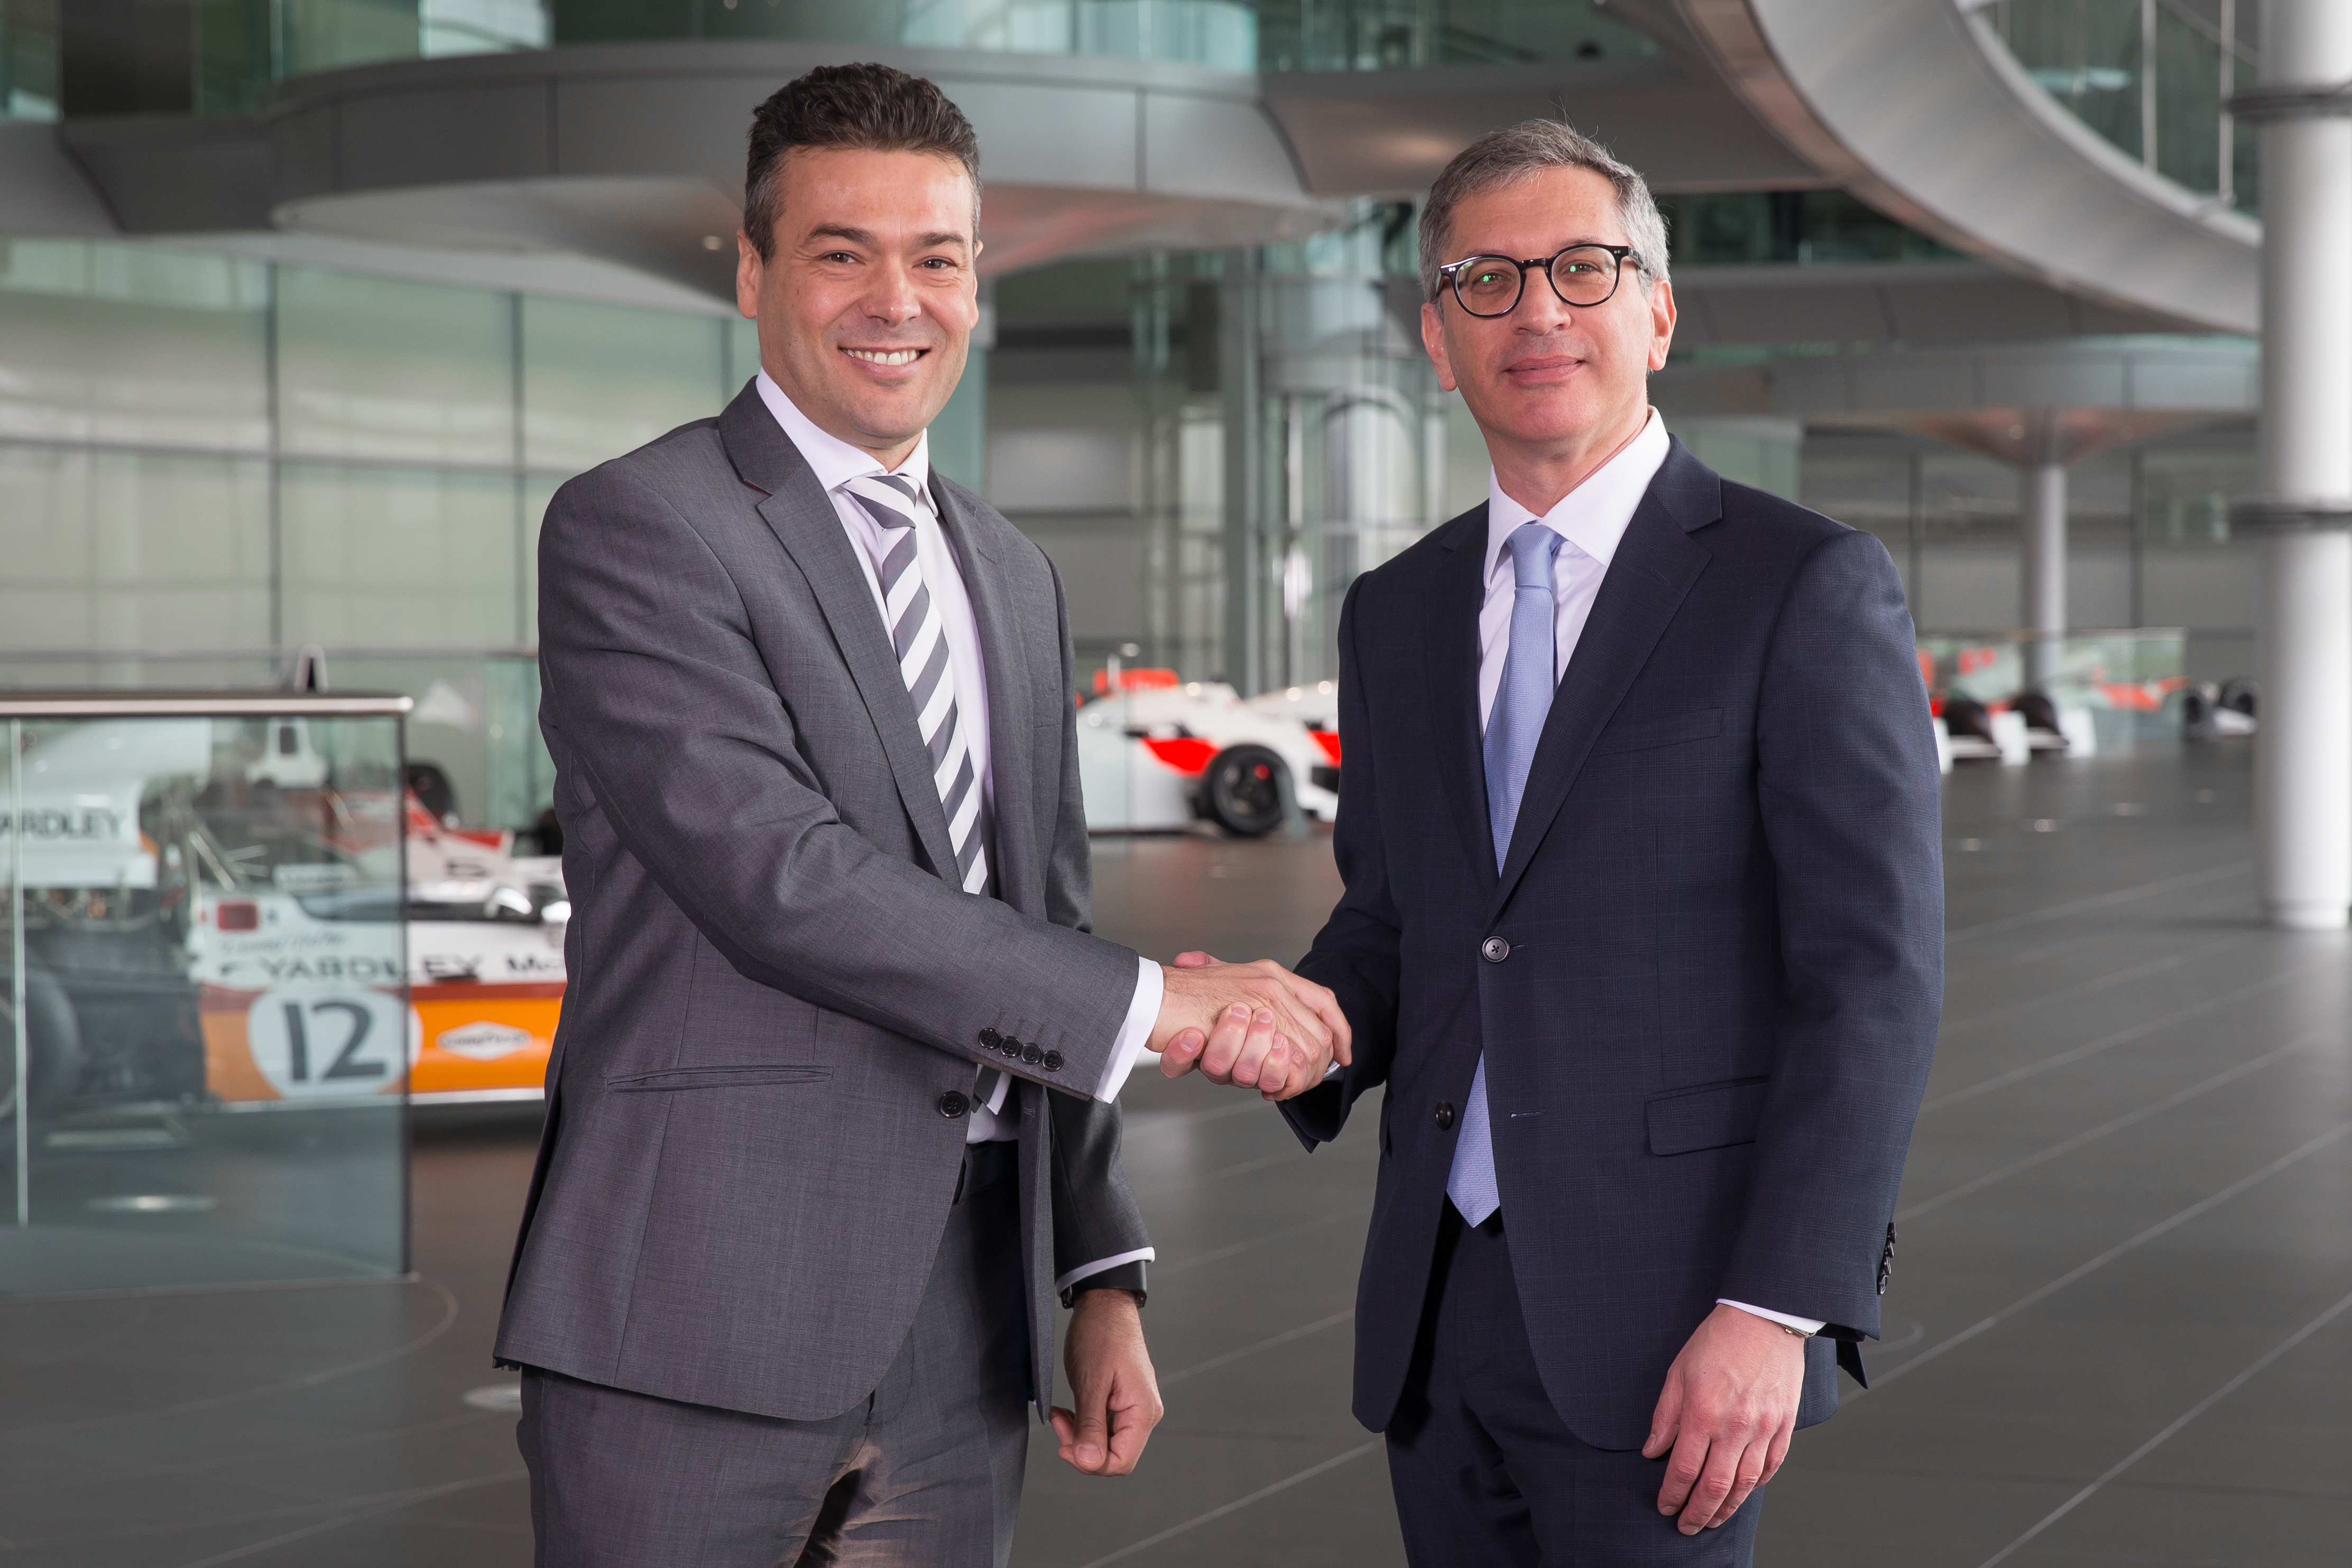 Mclaren Racing Signs New Four Year Partnership With Stratasys To Wire Harness Bring Additive Manufacturing Formula 1 Business